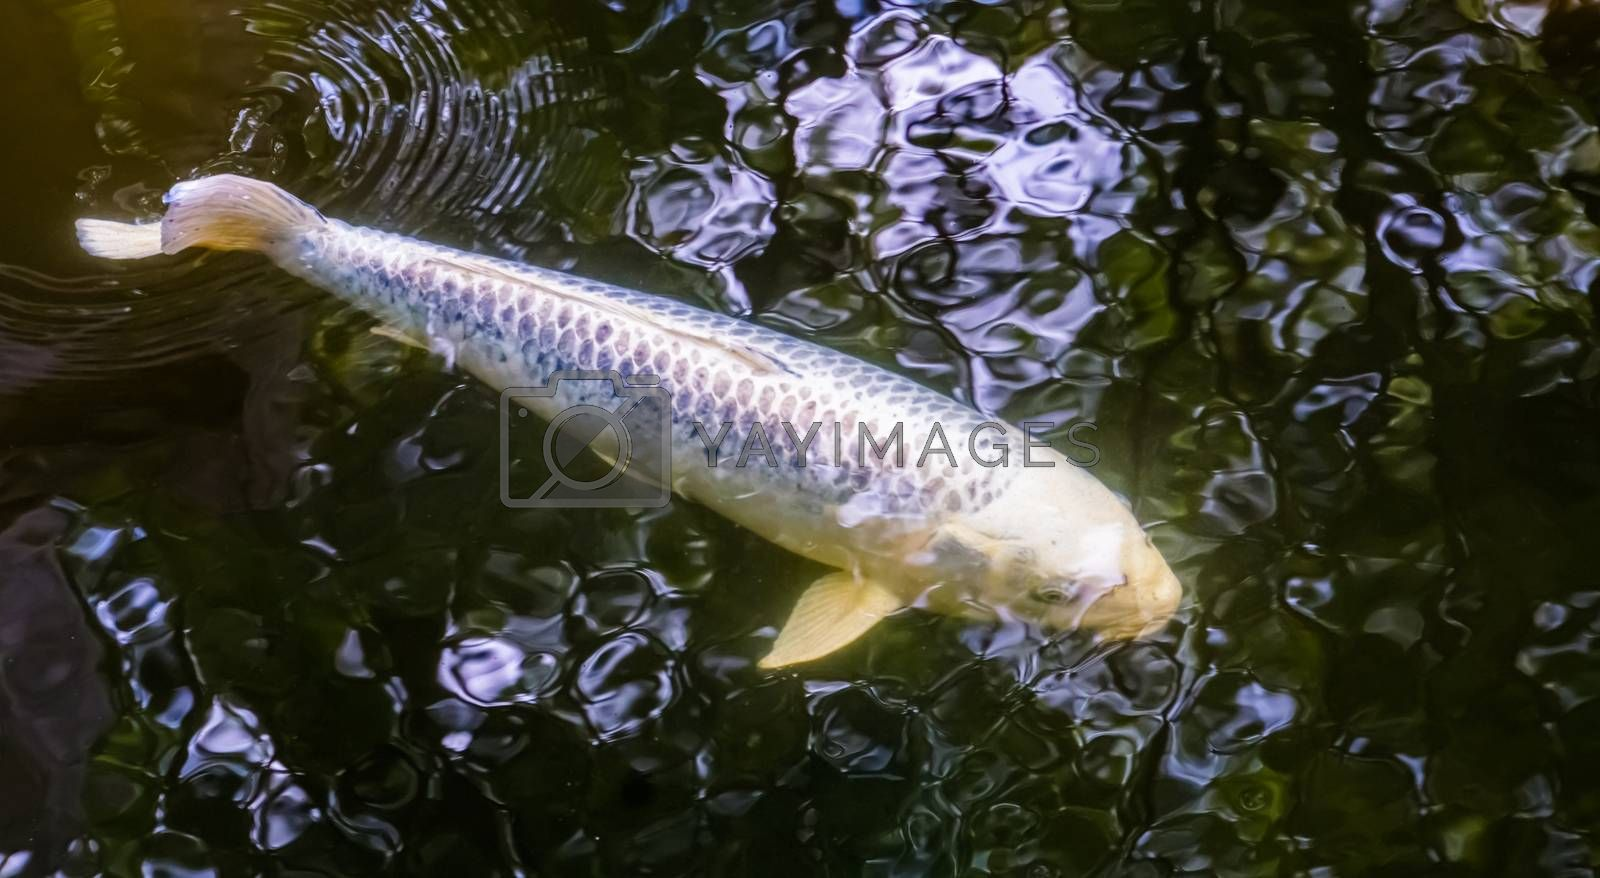 White carp swimming underwater, popular pets for in the pond, Freshwater fish specie